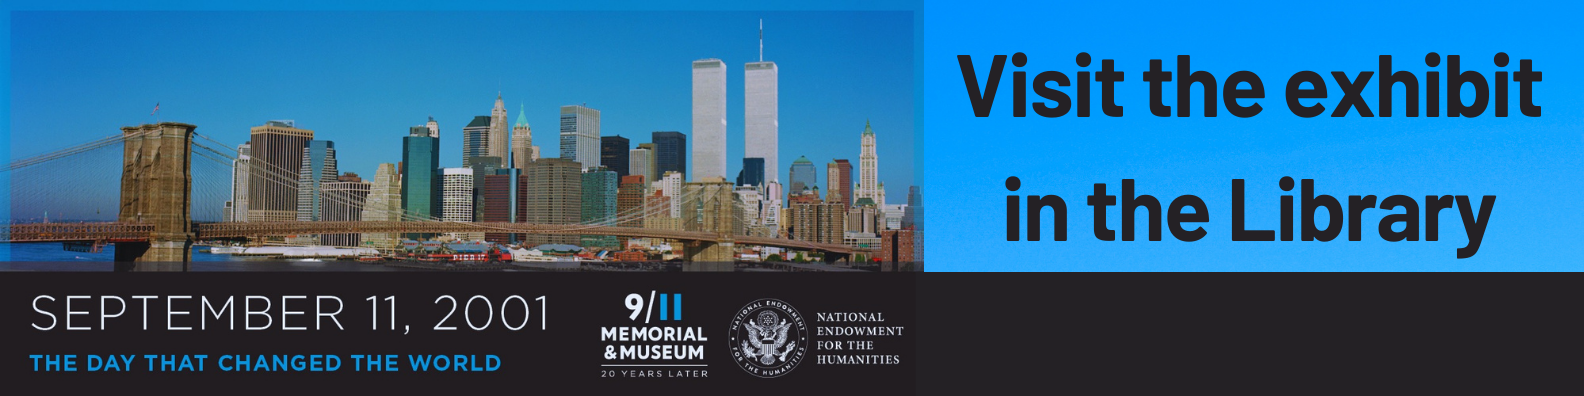 Visit the 20th anniversary of September 11th exhibit in the Library